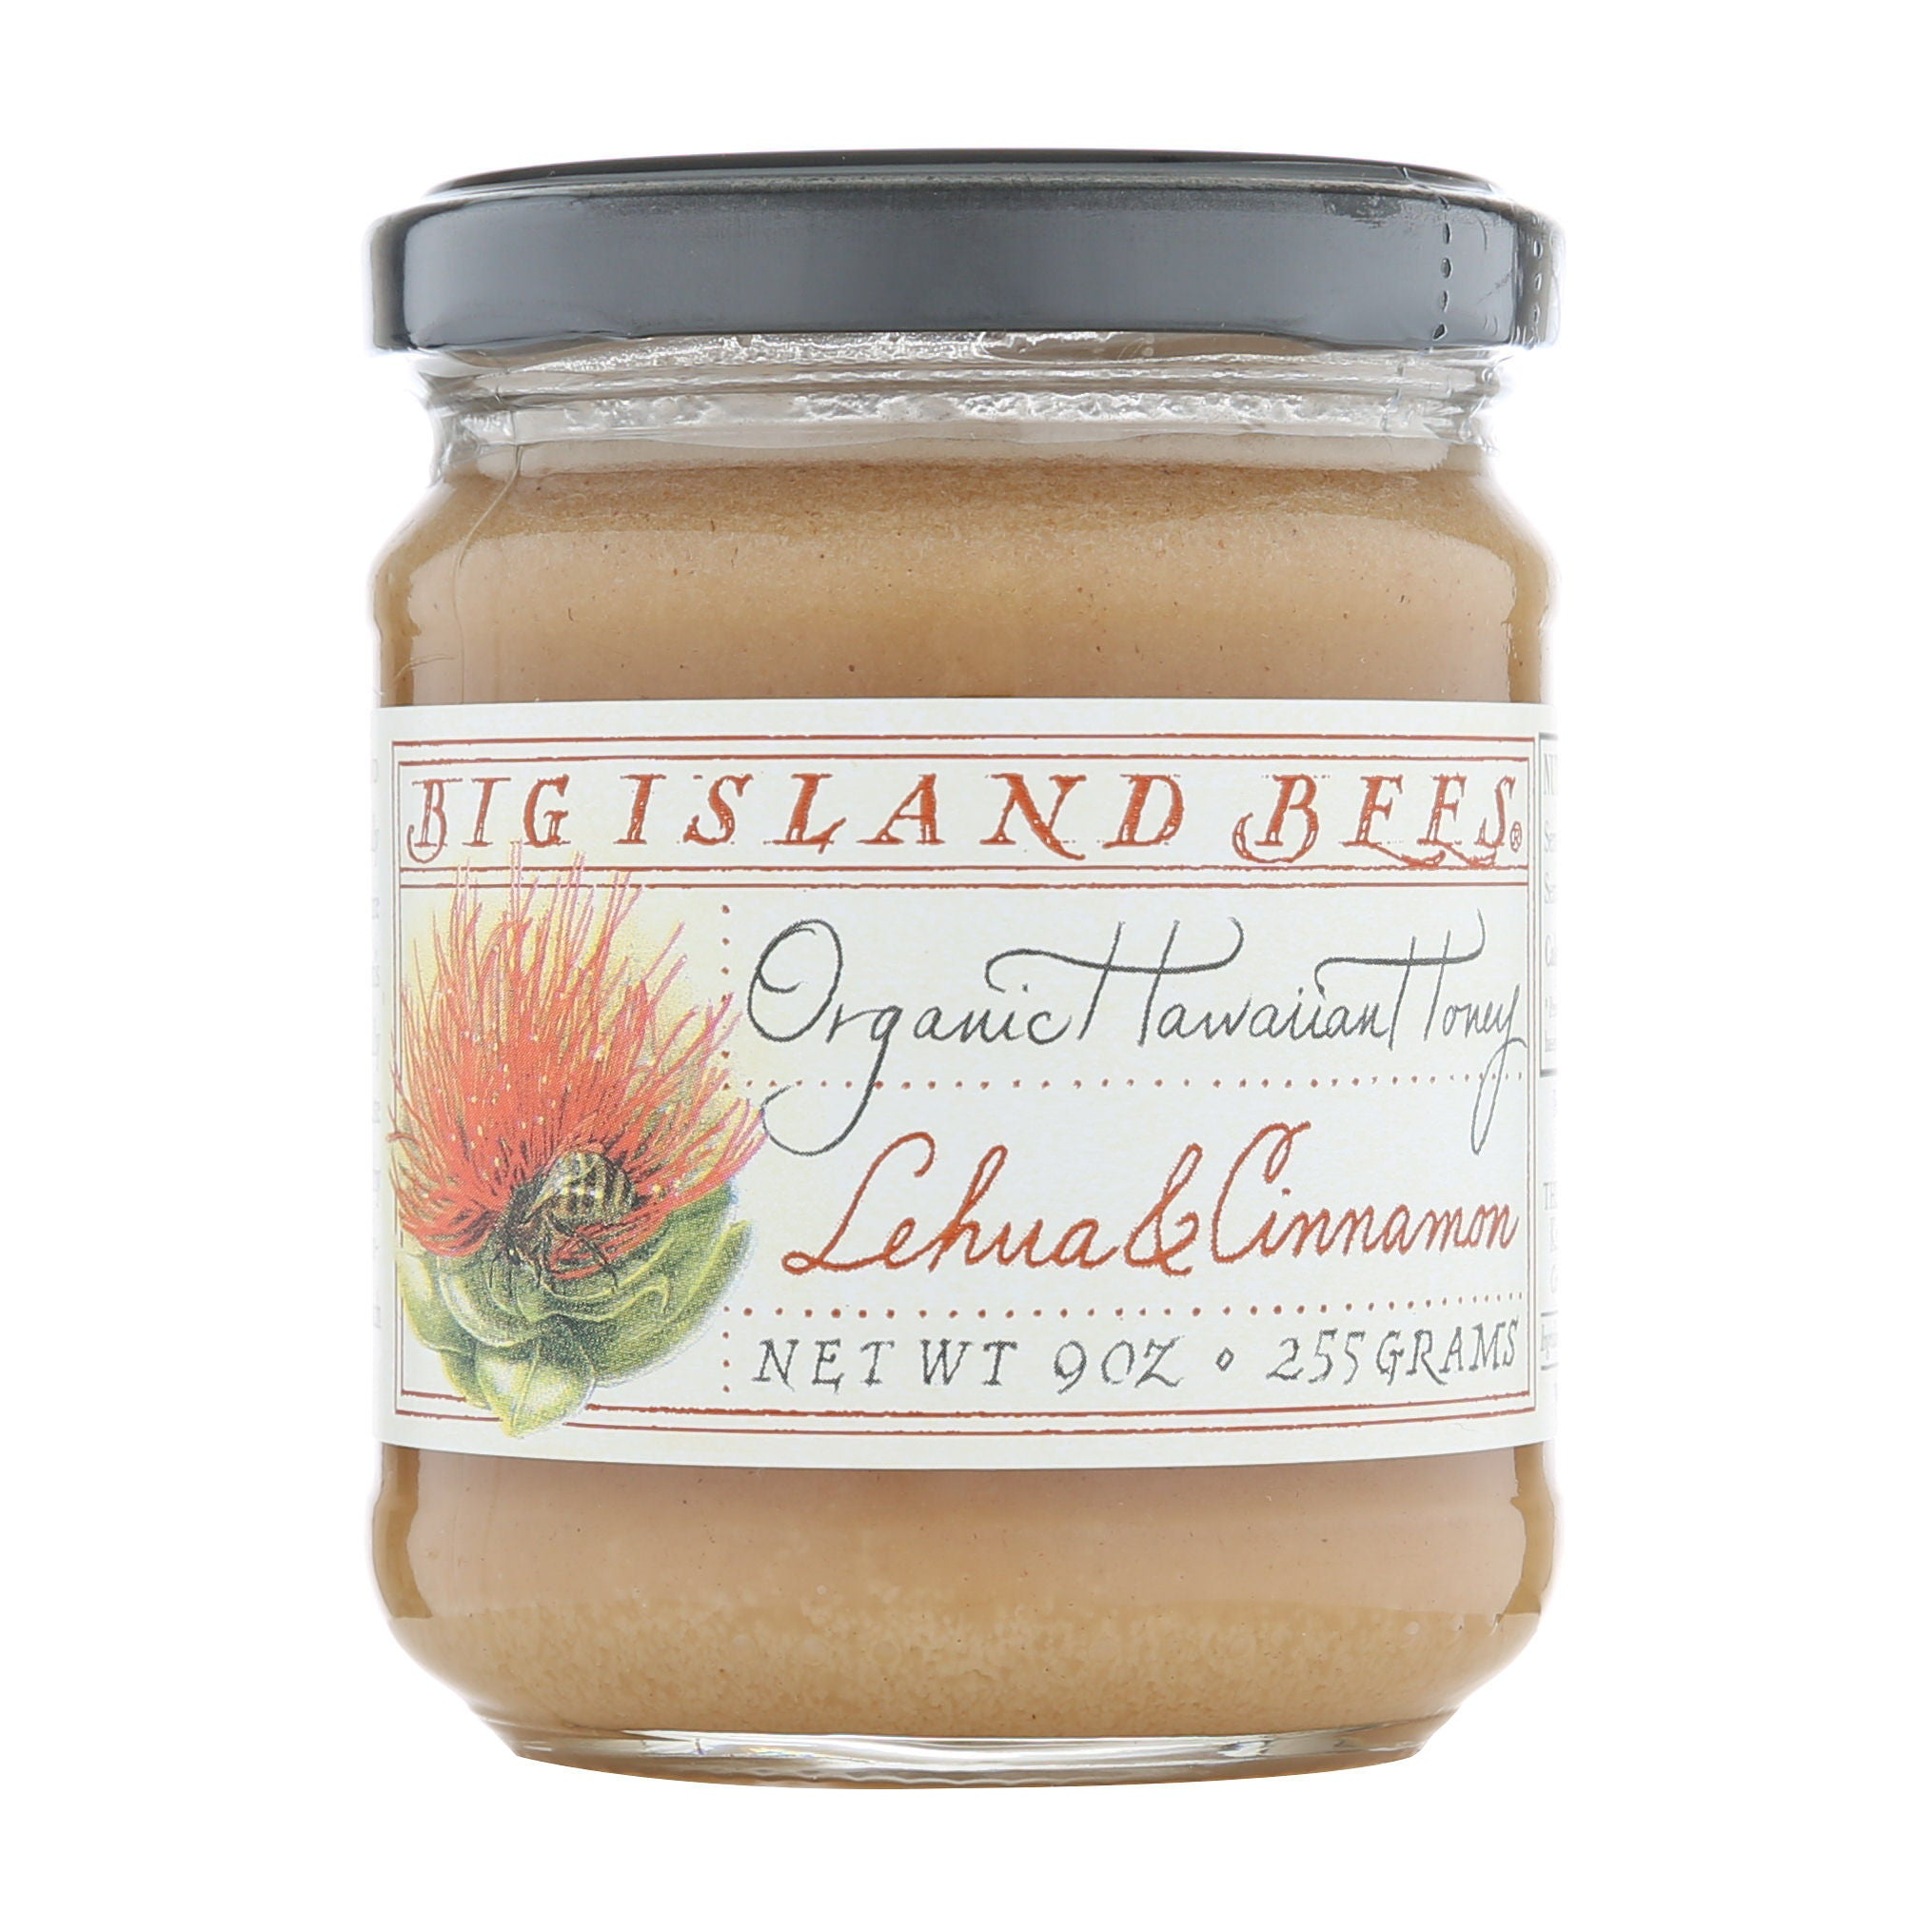 Big Island Bees Honey Lehua Cinnamon 9oz.